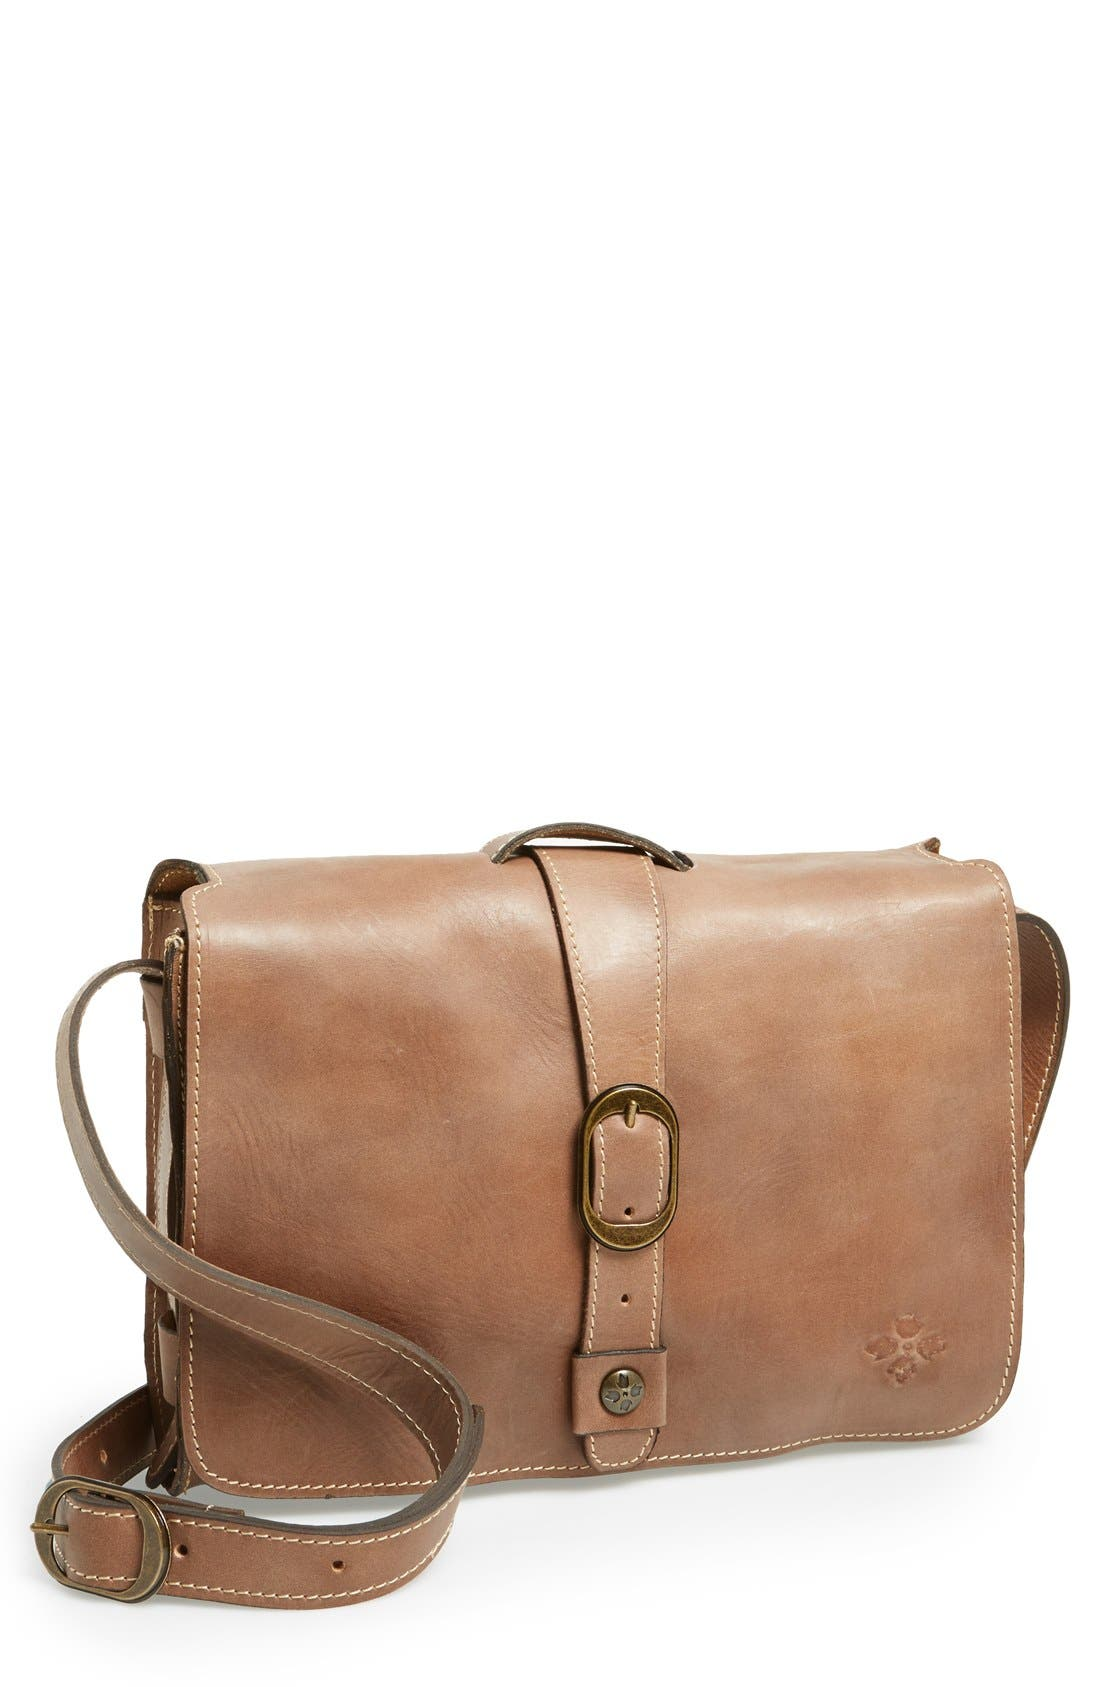 Alternate Image 1 Selected - Patricia Nash 'Matova' Crossbody